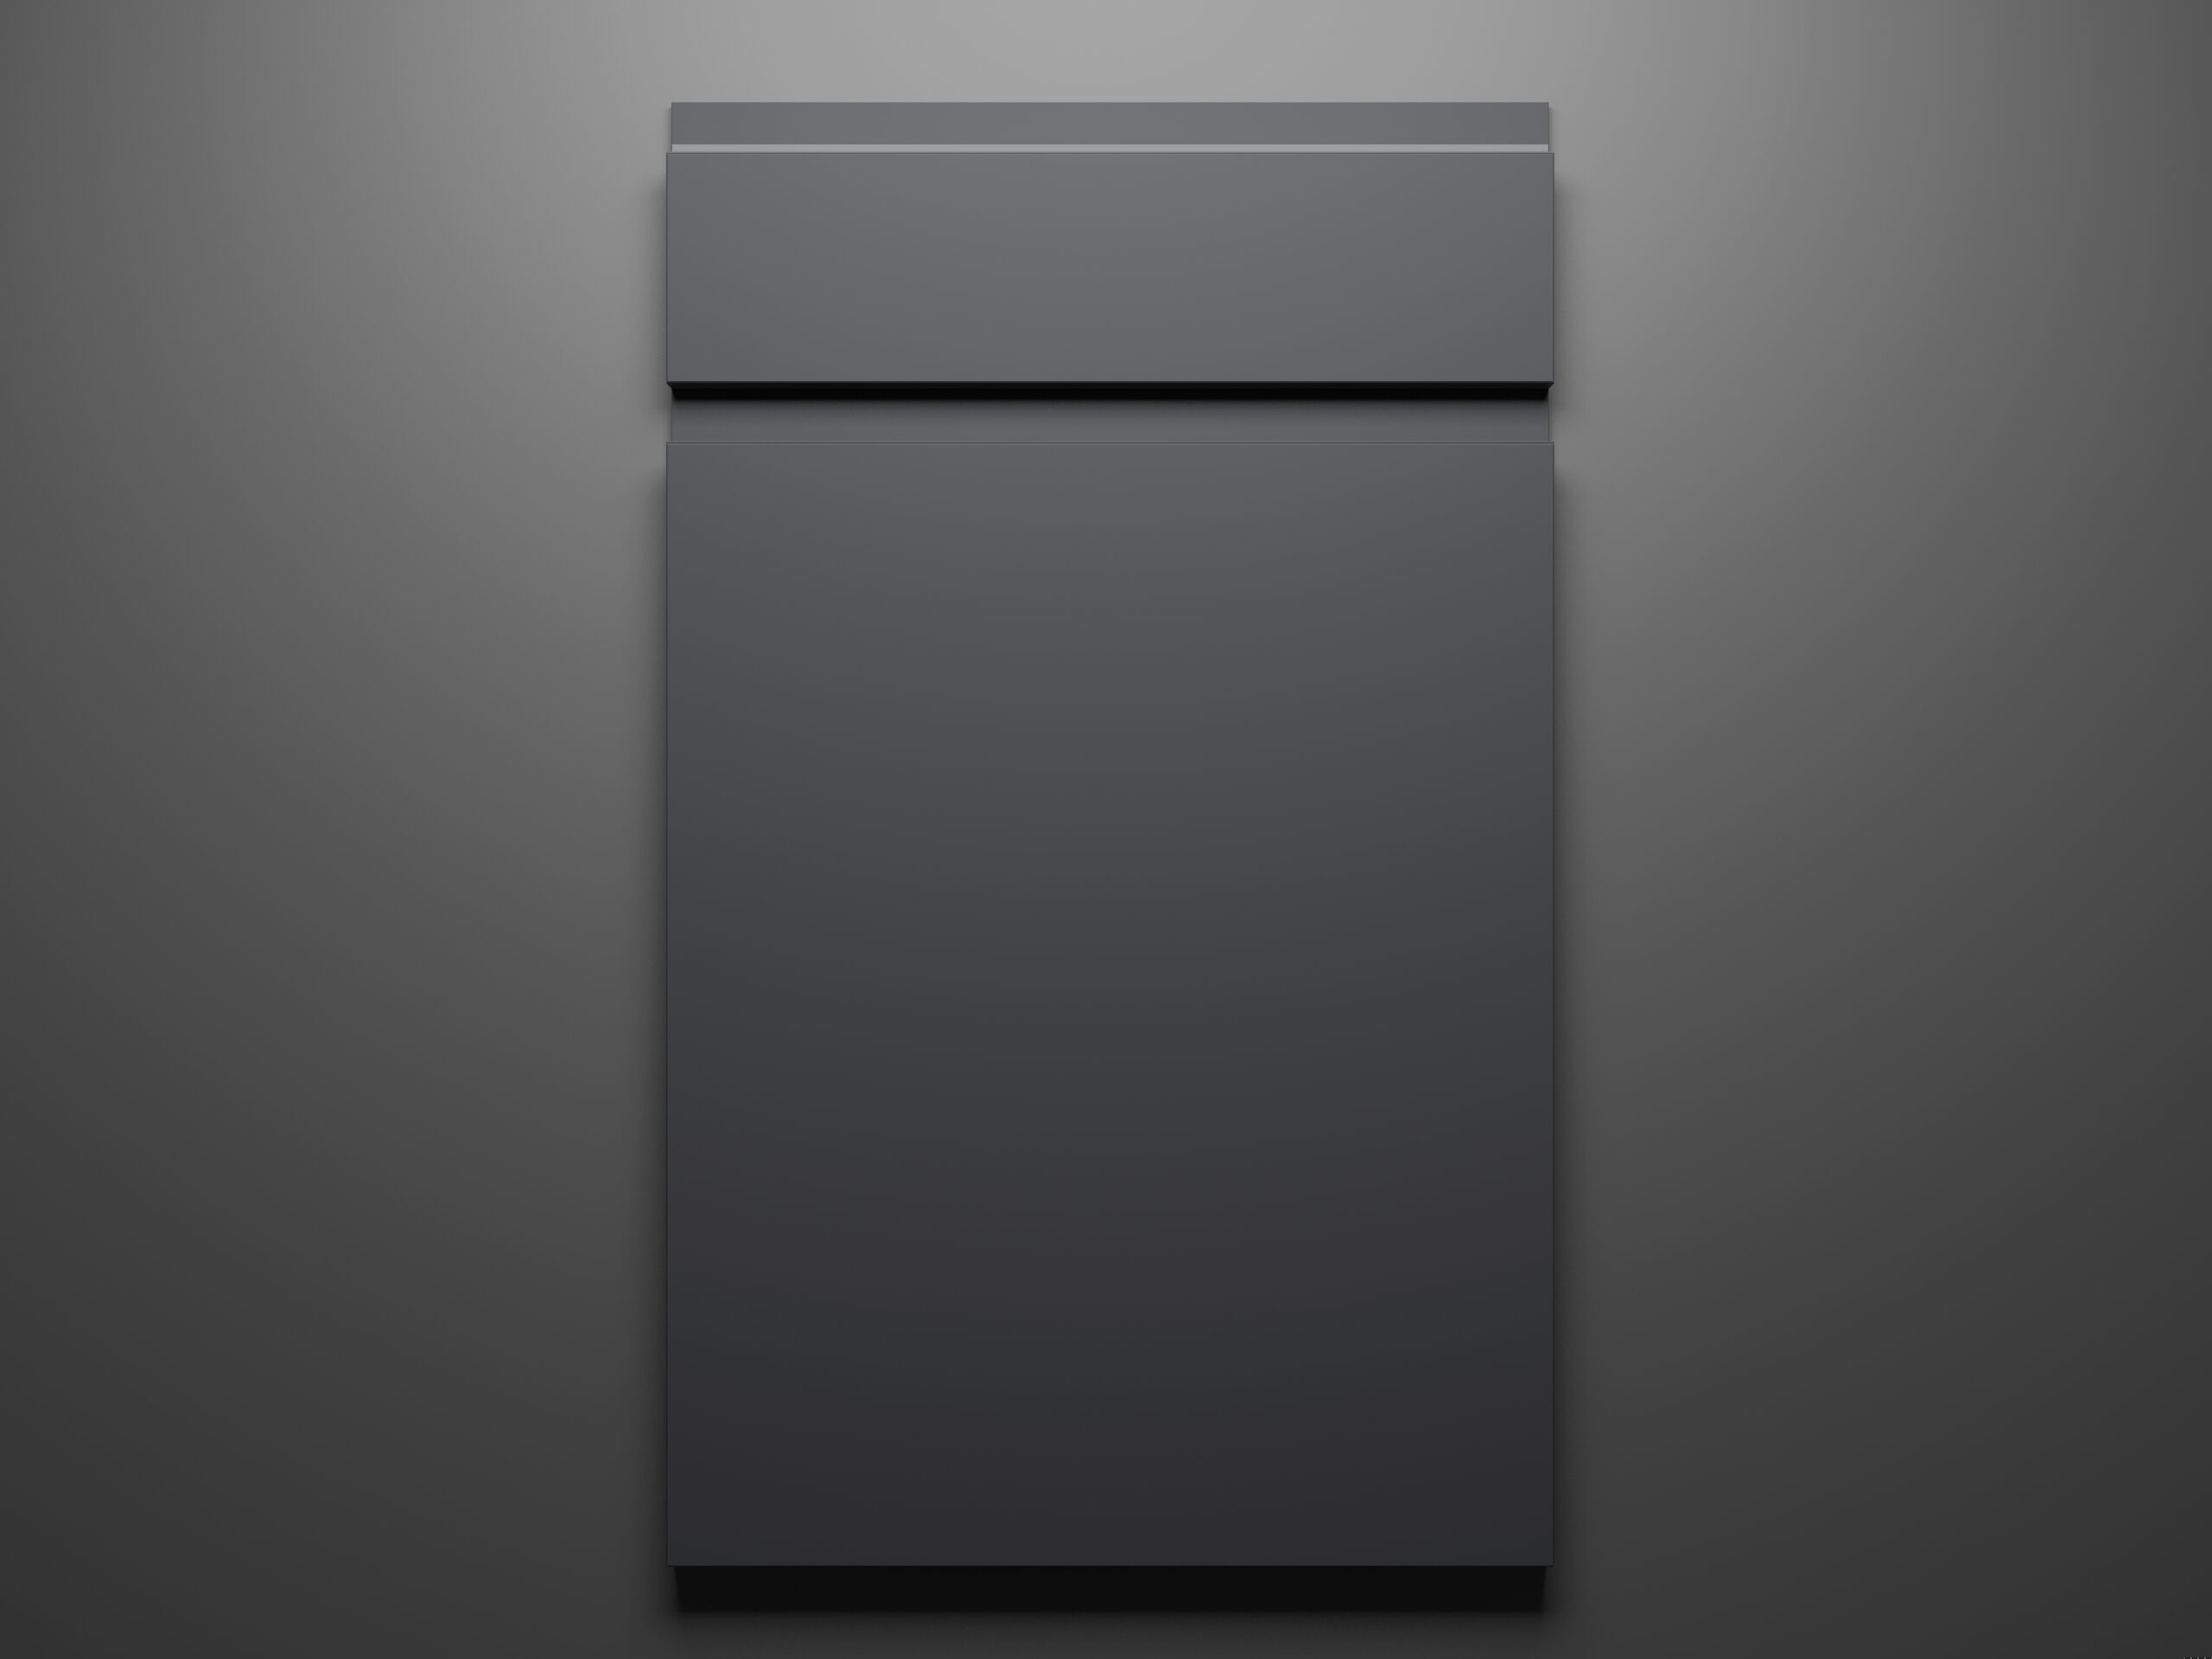 Lacquer Grey Sample Door on Grey Background